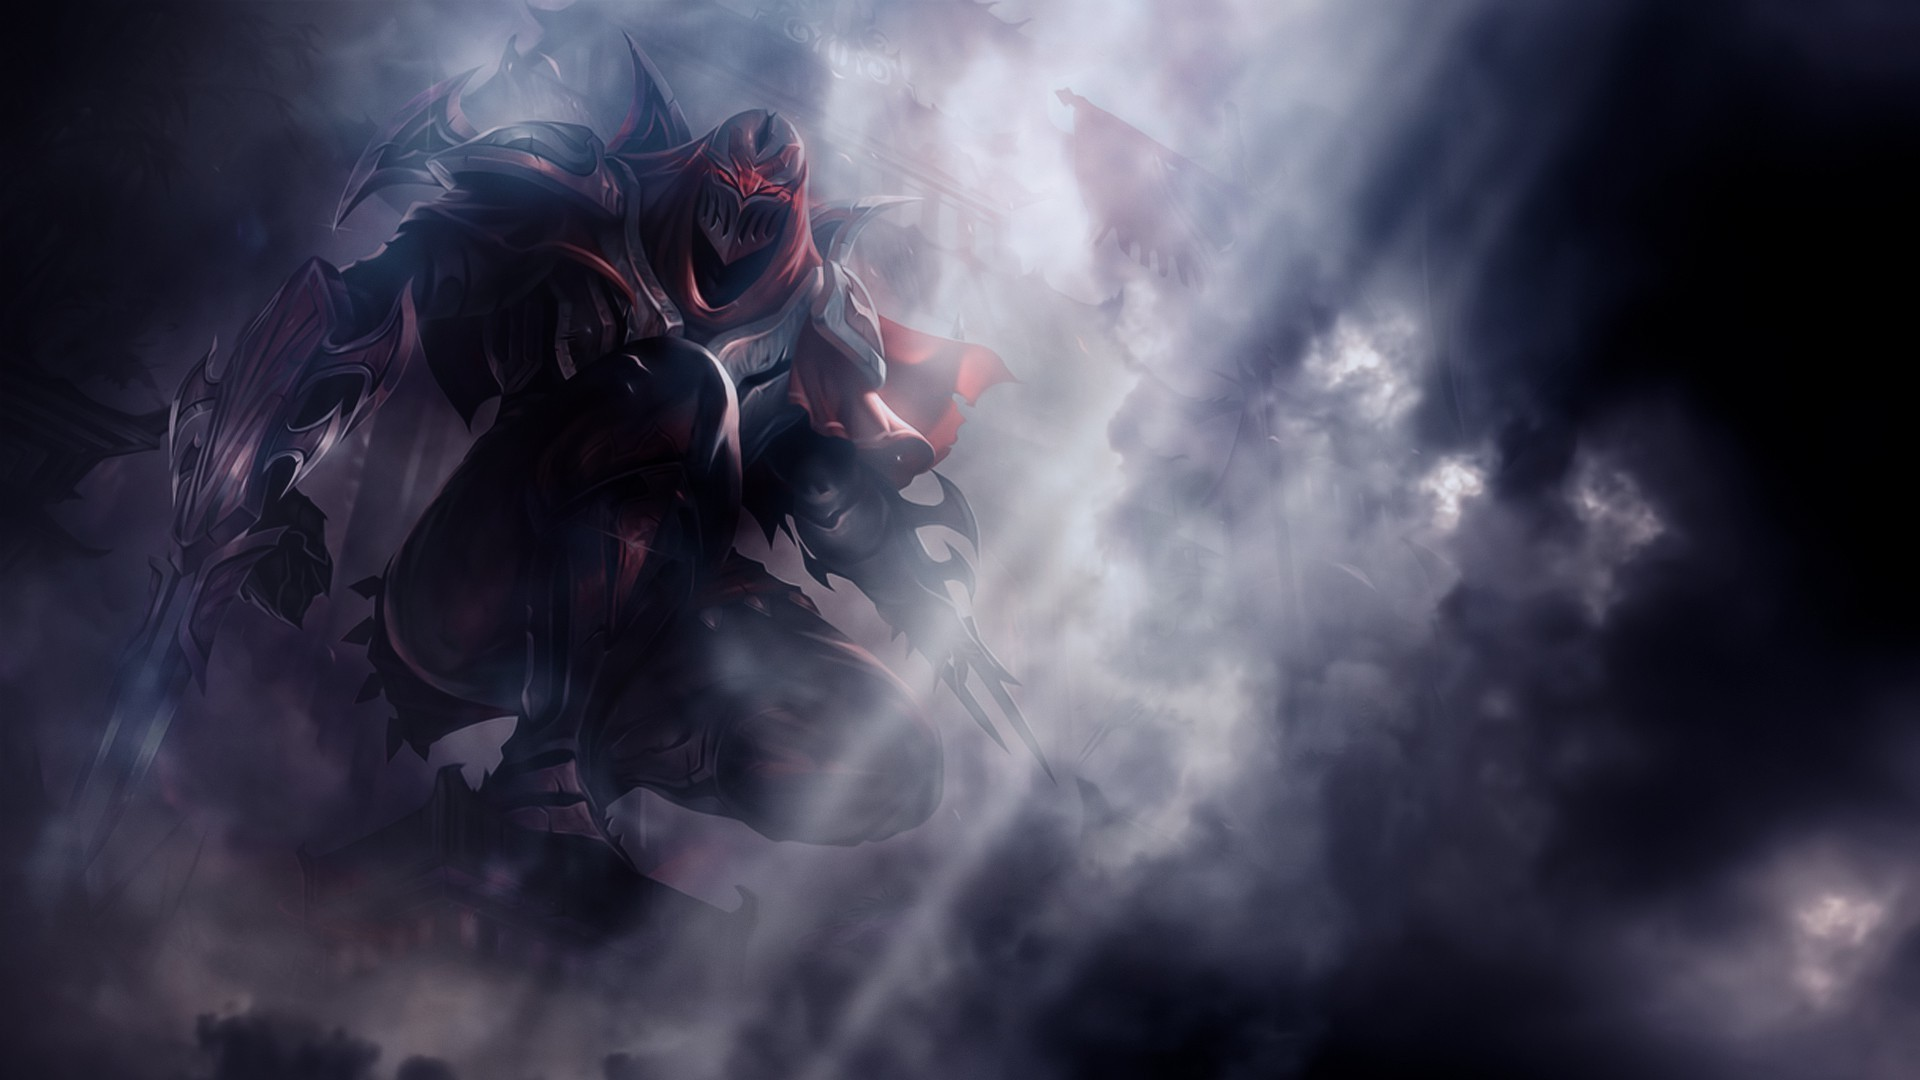 Cool lol wallpapers 84 images 1920x1200 shaco league of legends 23 wallpaper hd voltagebd Gallery